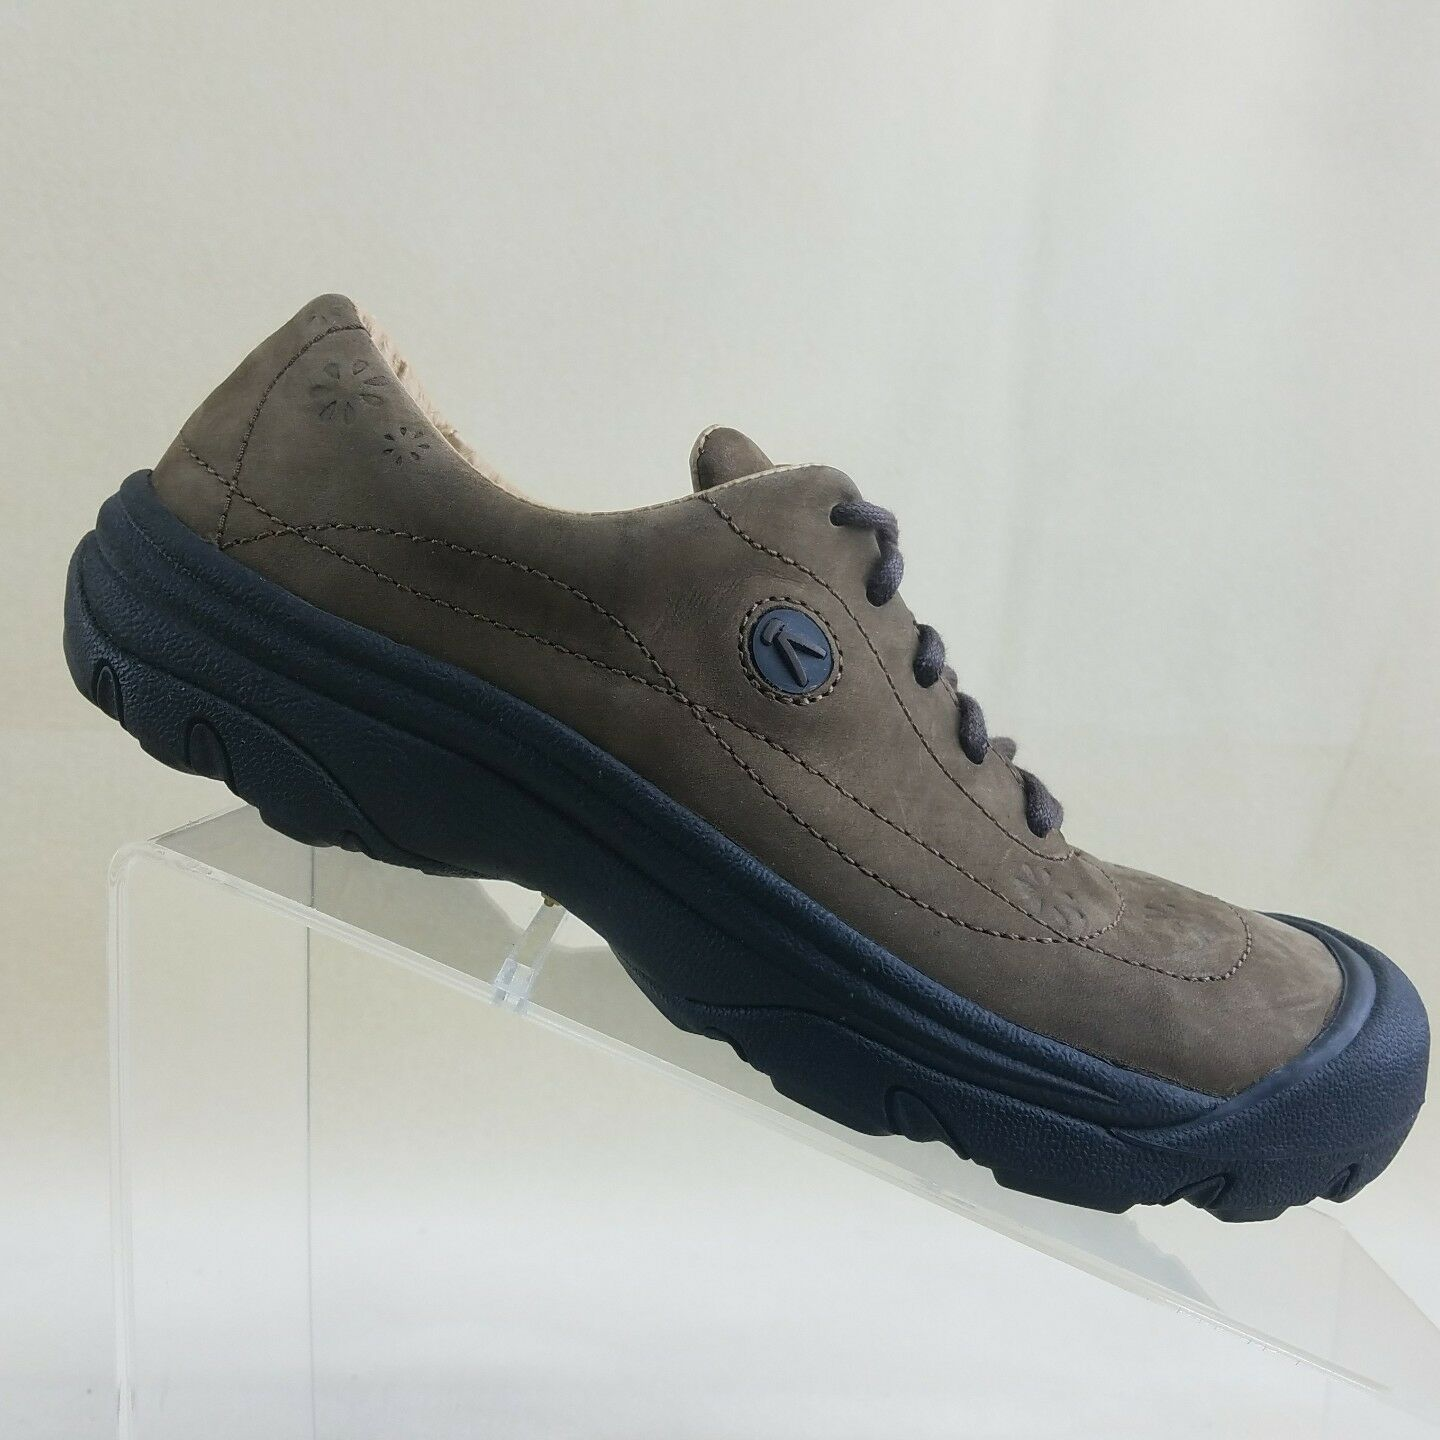 Keen Womens Lace Up Hiking Walking Sport shoes Sneaker Brown Suede Size 7  G67